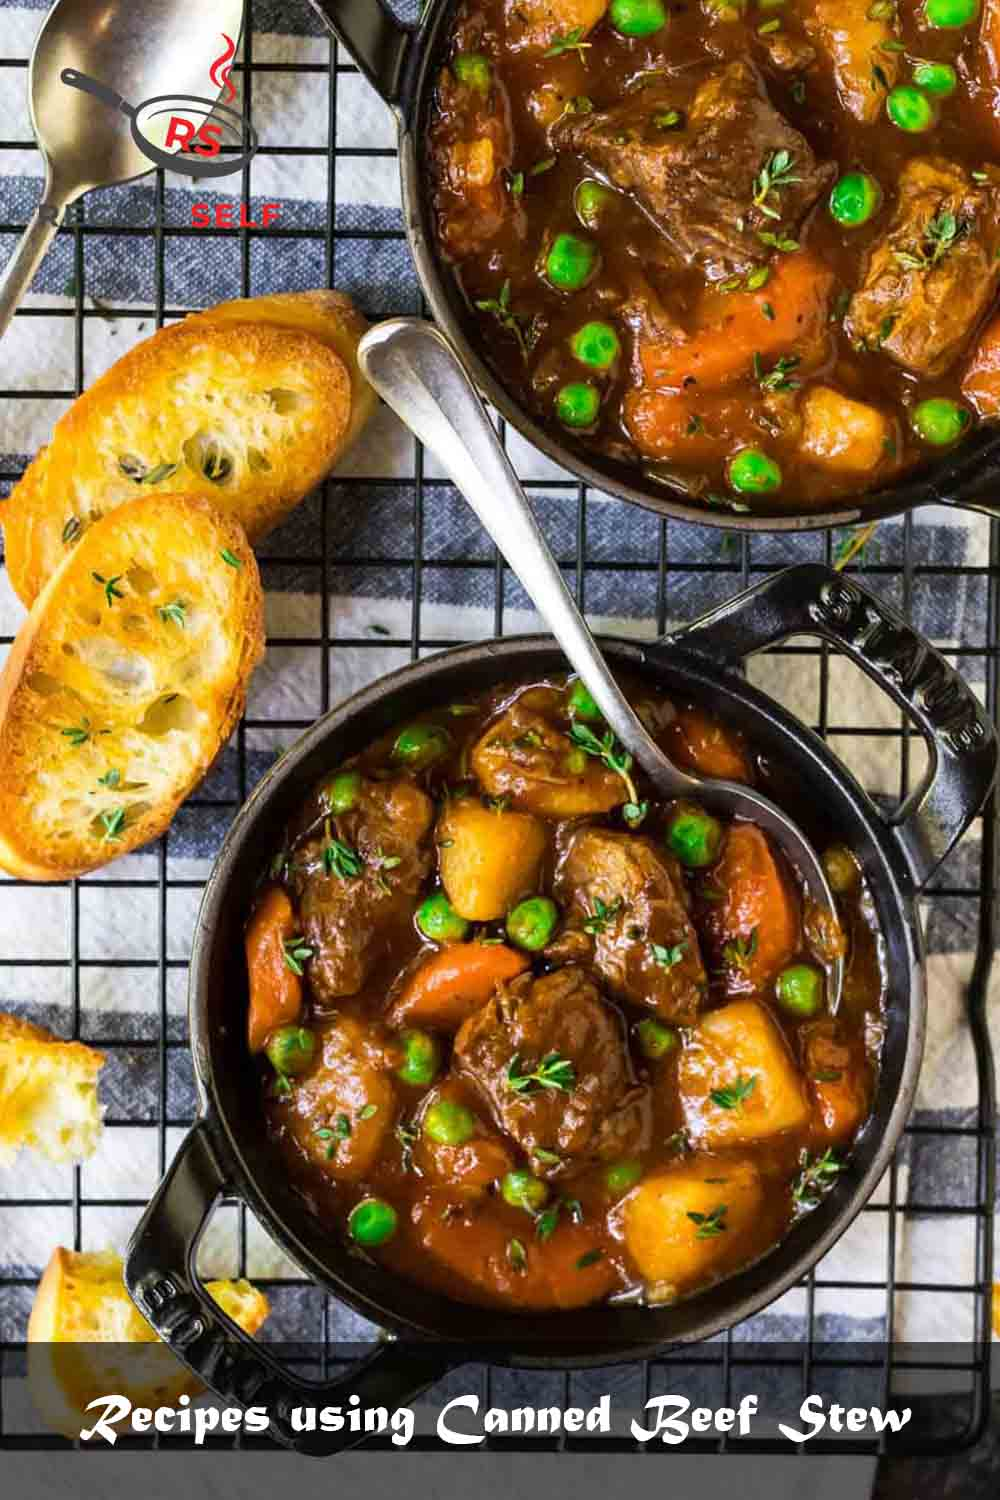 Recipes using Canned Beef Stew